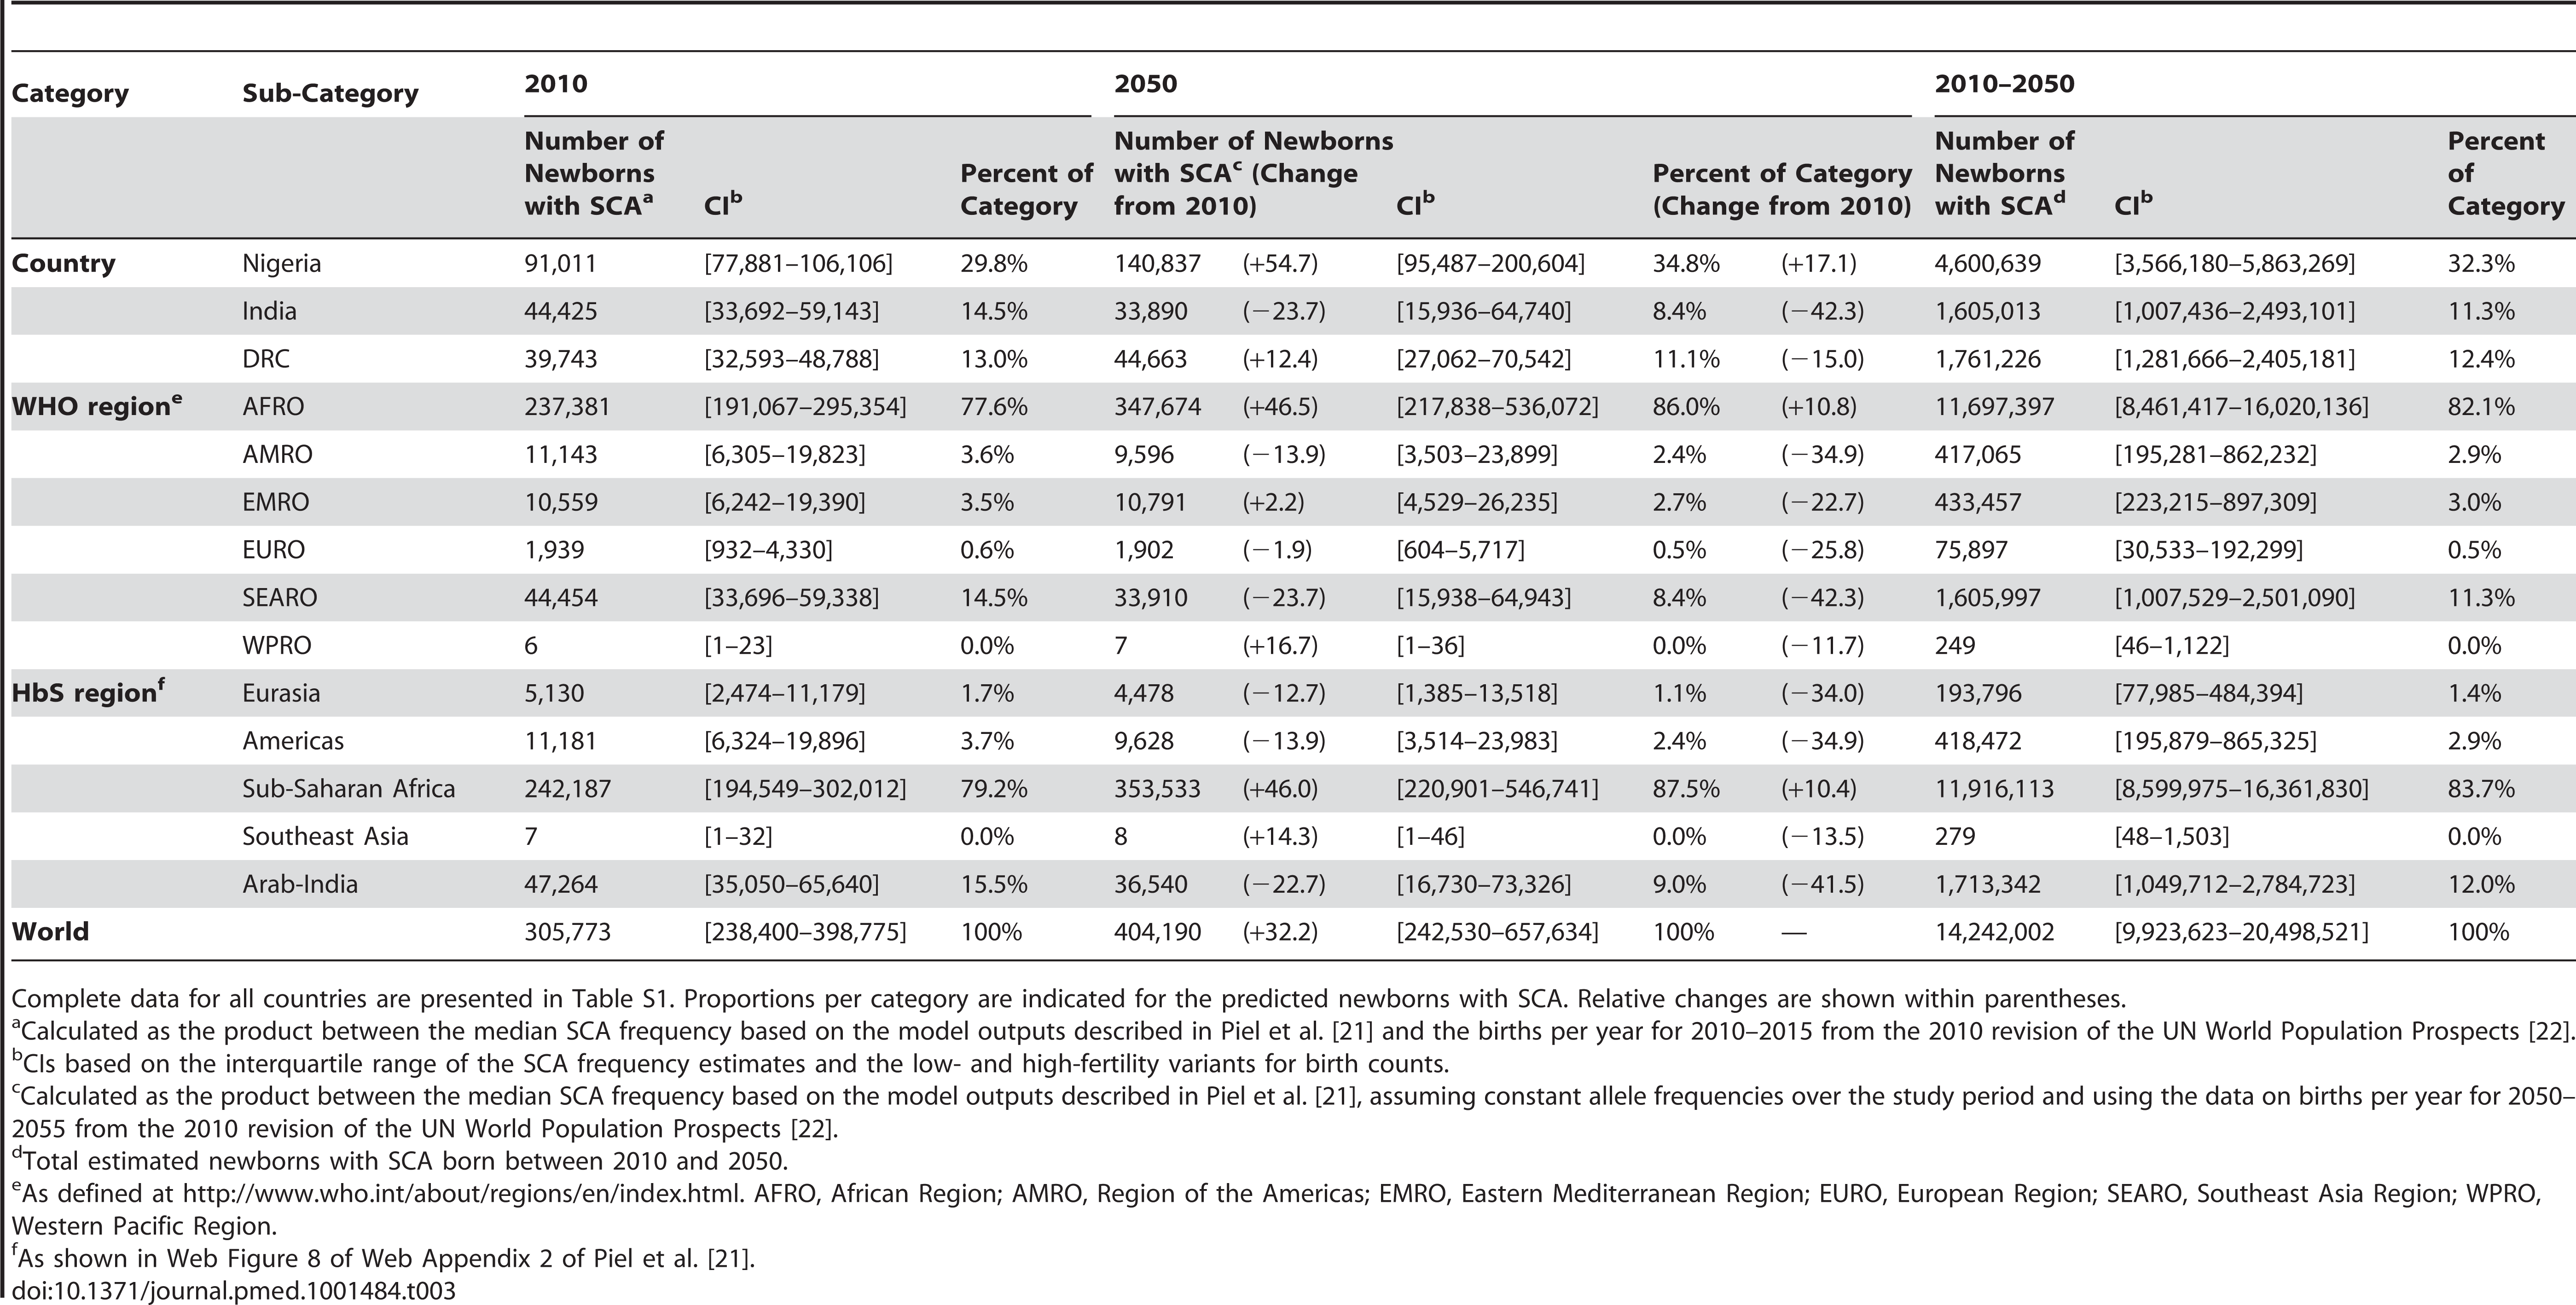 Projected number of newborns with SCA born in 2010 and 2050 for the three most affected countries (Nigeria, India, and the DRC), WHO regions, HbS regions, and worldwide.